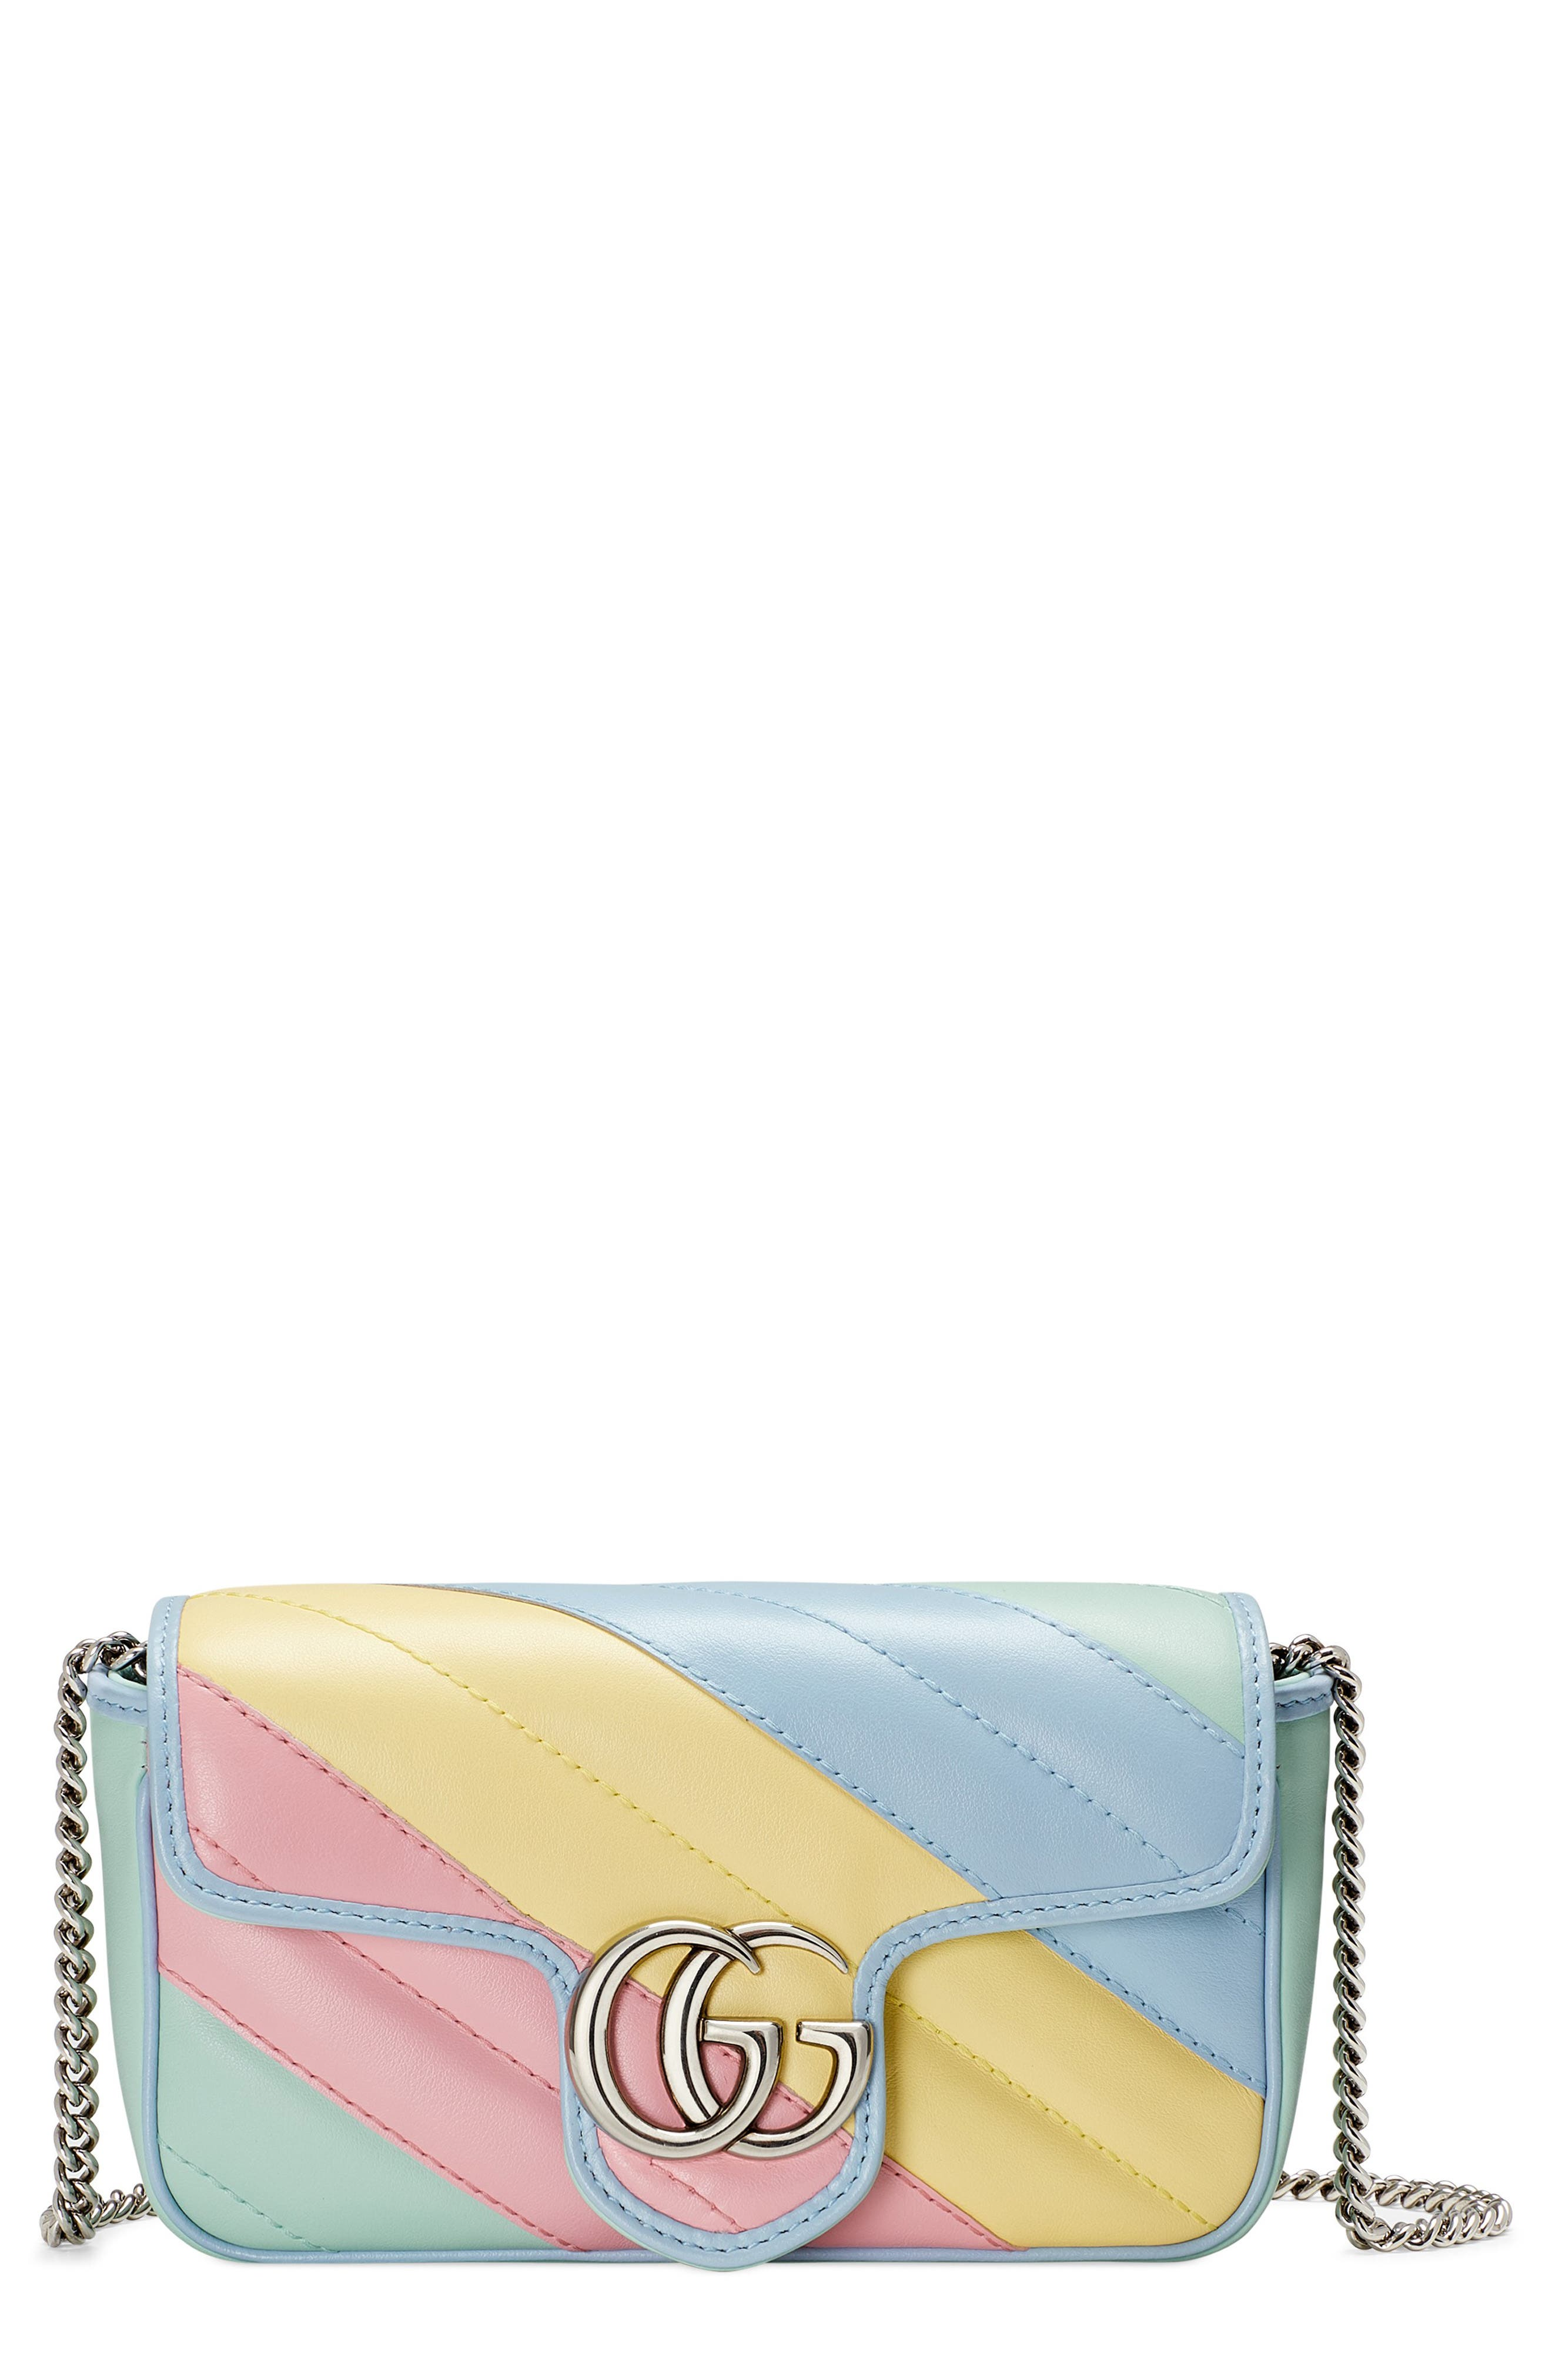 Pre-order this style today! Add to Shopping Bag to view approximate ship date. You\\\'ll be charged only when your item ships. Gucci gives its Marmont bag a charming makeover with dreamy pastel color that plays up the silvertone double-G hardware and dimensional matelasse quilting. An interior key ring is meant for attaching it to a larger bag, or you can remove the chain strap and carry it as a clutch. Style Name: Gucci Super Mini Gg Matelasse